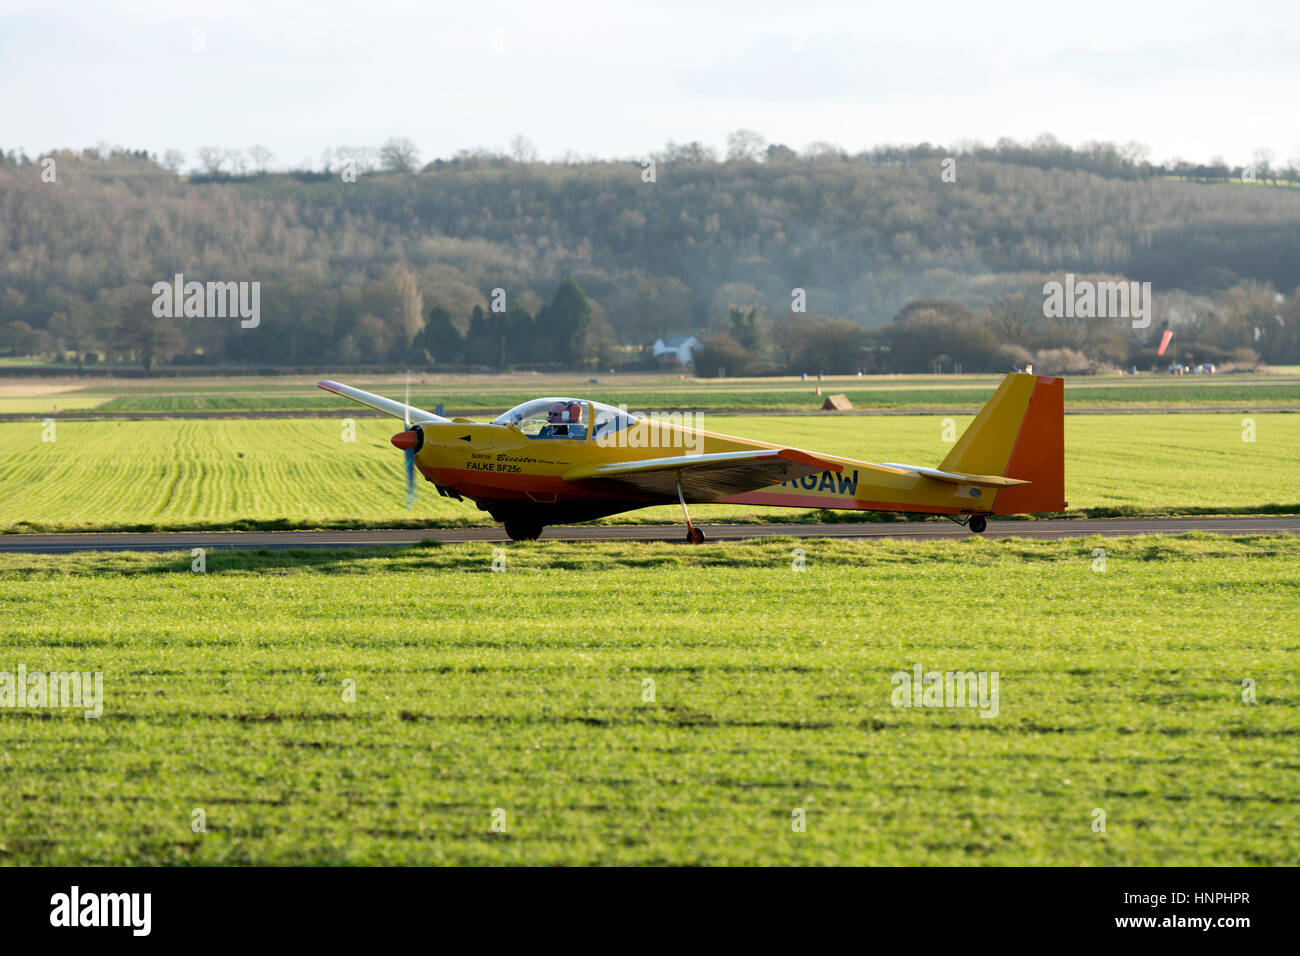 Scheibe SF-25-C Falke taxiing at Wellesbourne Airfield, Warwickshire, UK (G-KGAW) - Stock Image